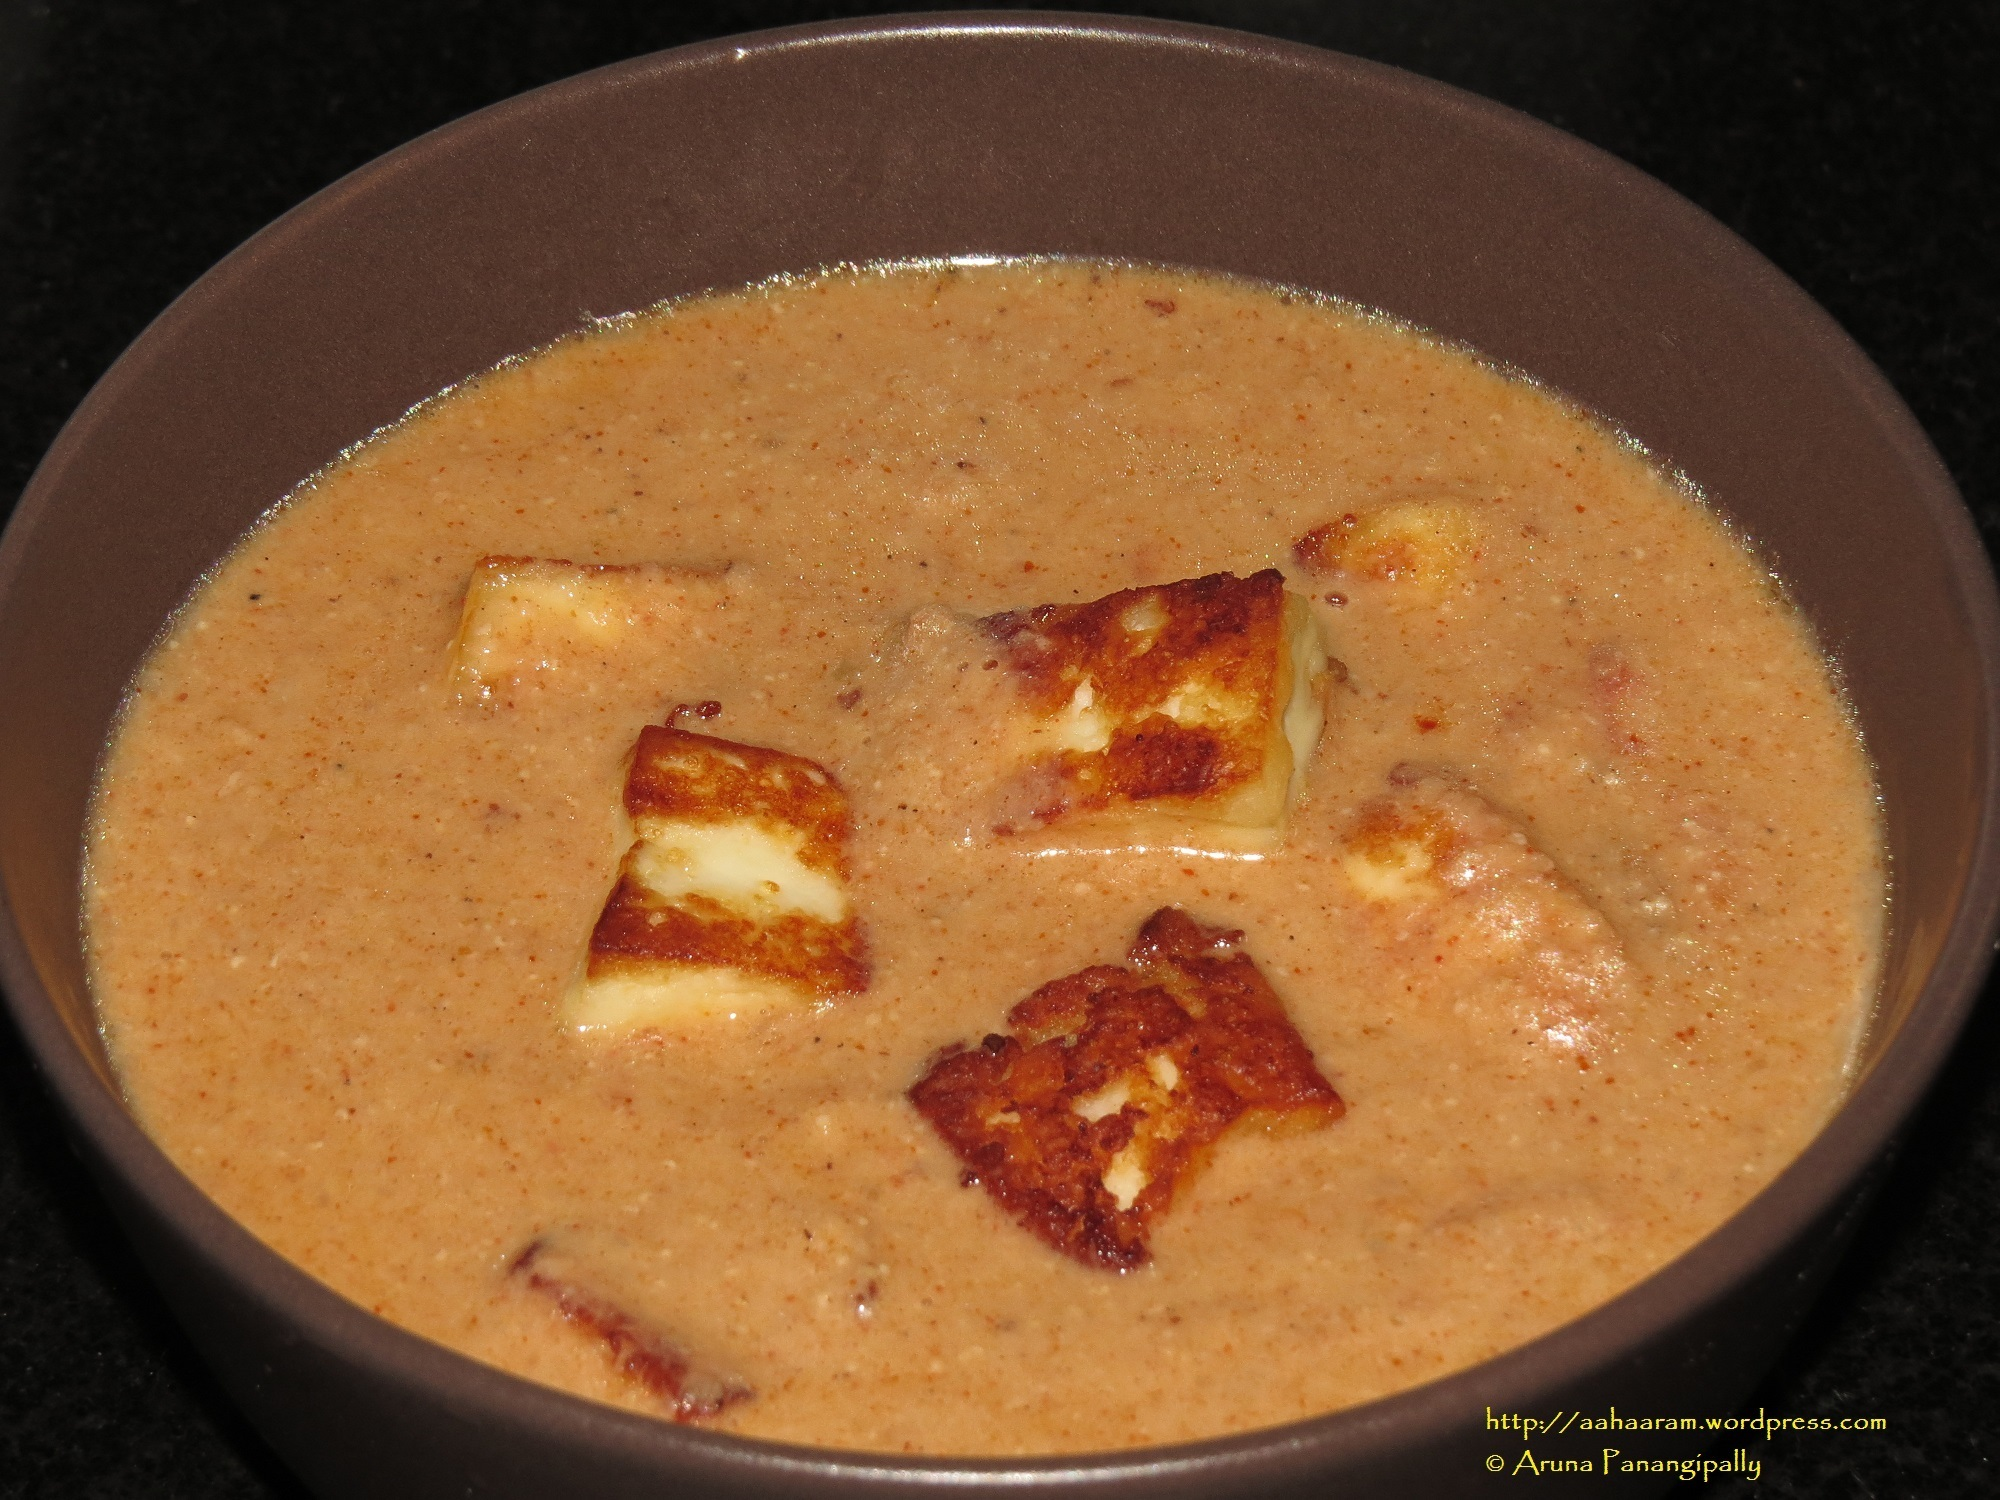 Mughlai Paneer (Cottage Cheese in Rich Onion-Tomato Gravy)